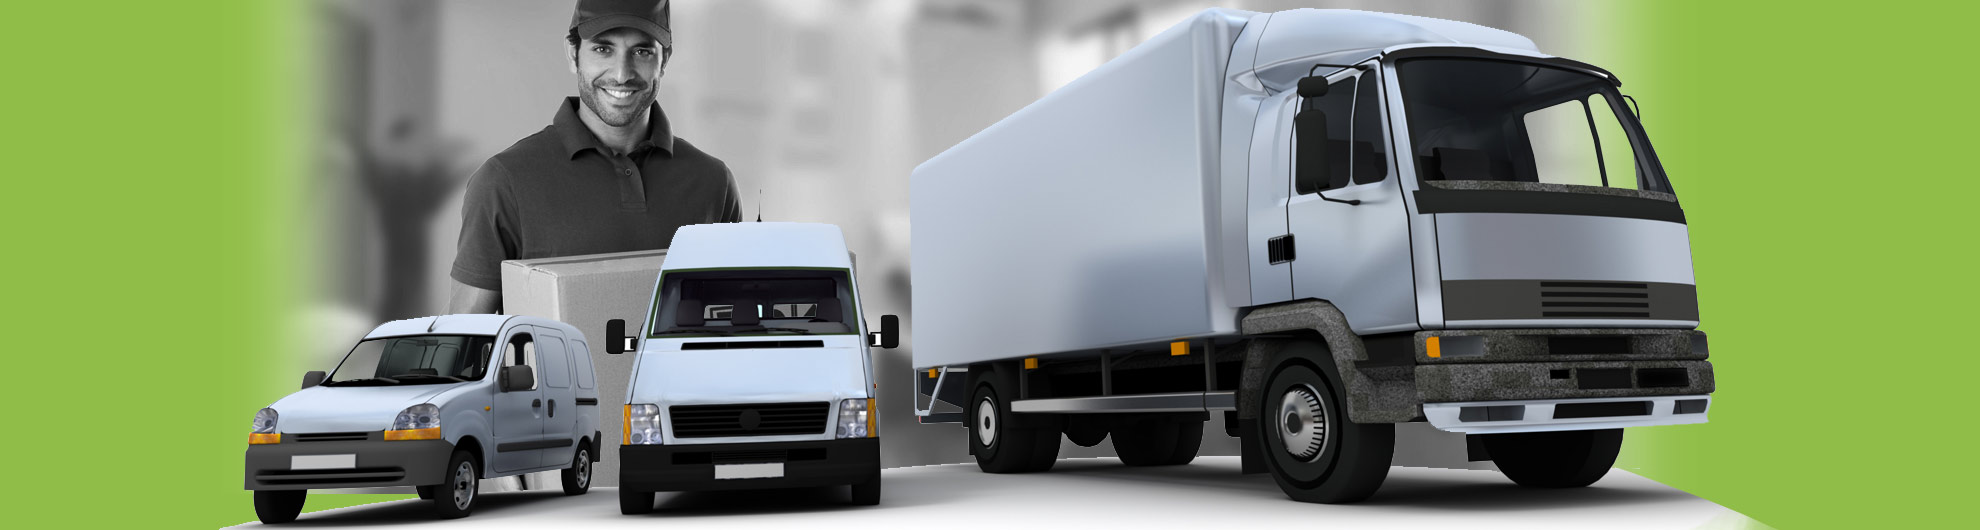 Sonderborg  International Movers - Shipping Companies